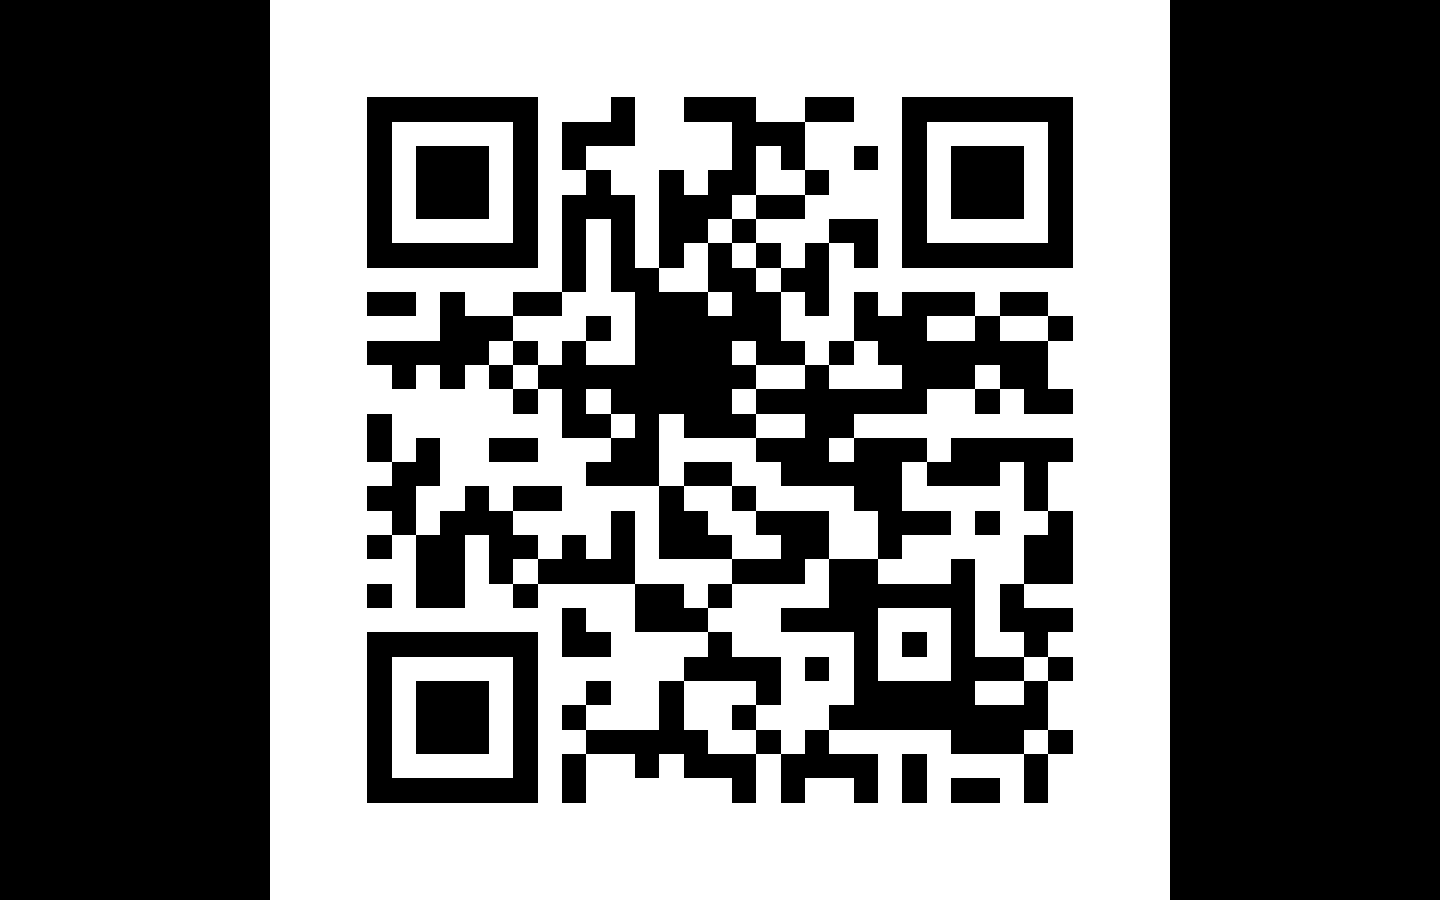 qr code scan for video